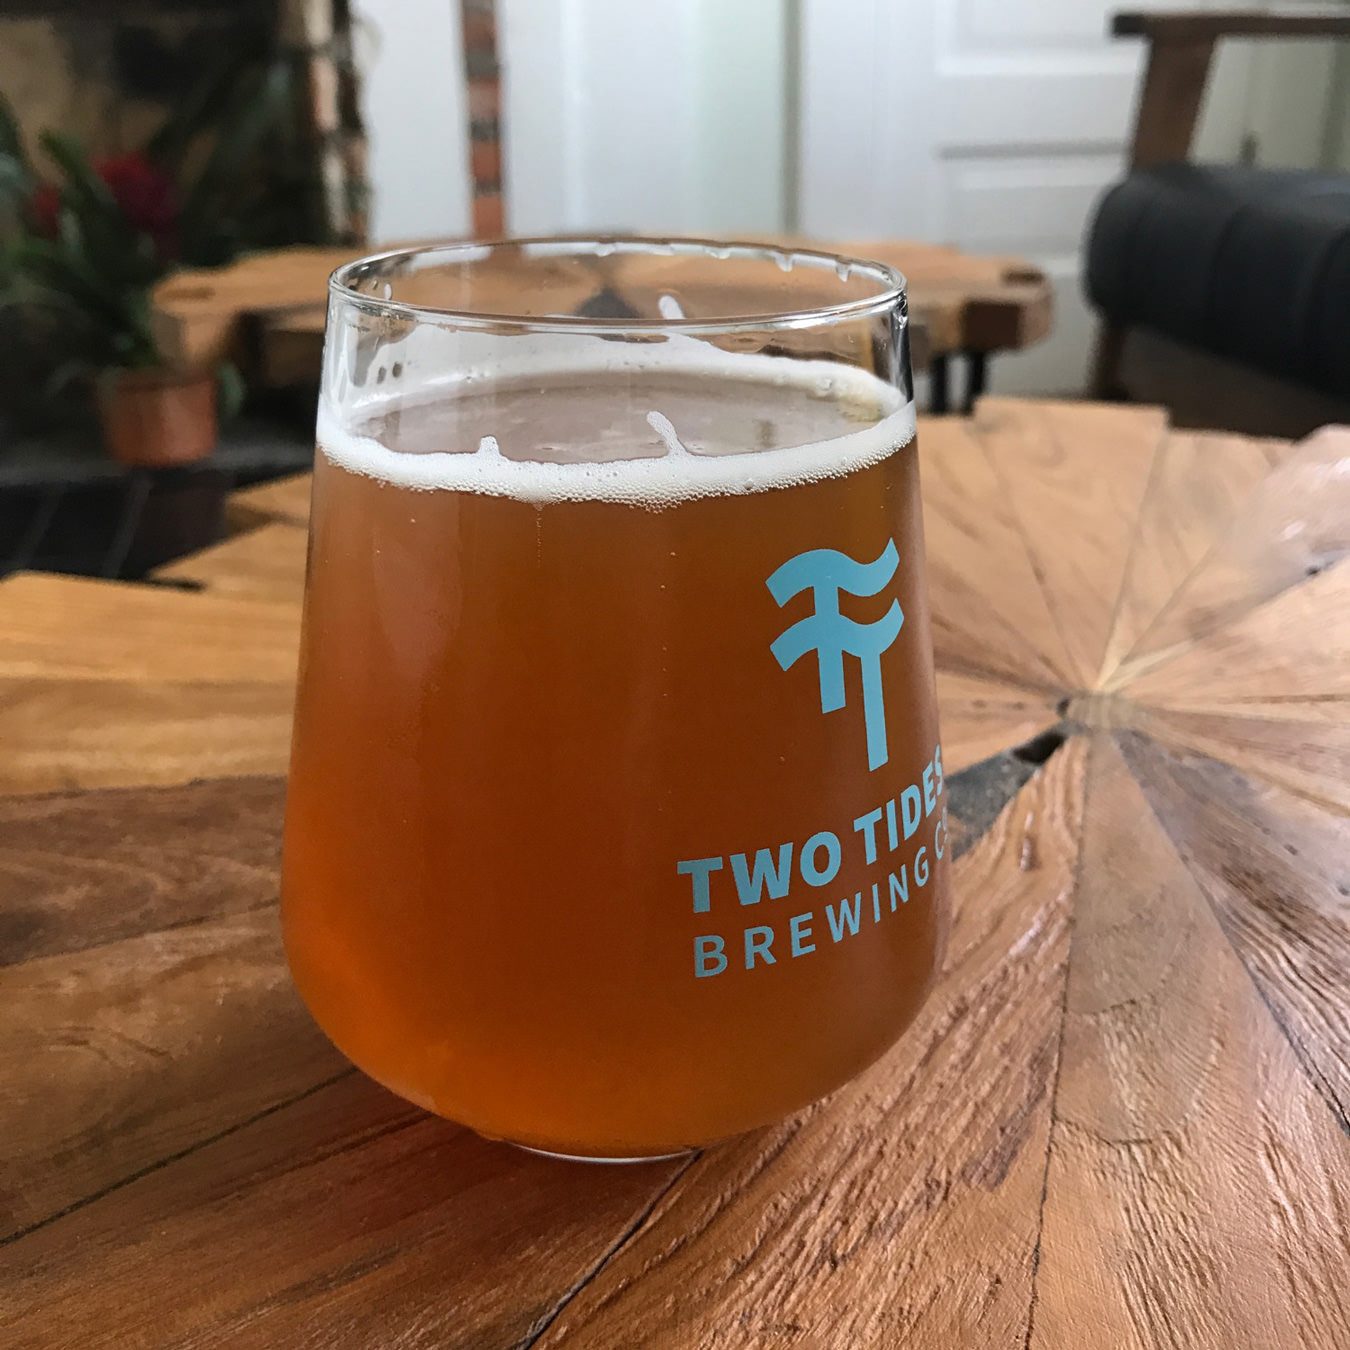 A photograph of the standard Two Tides Brewing Co. glass.